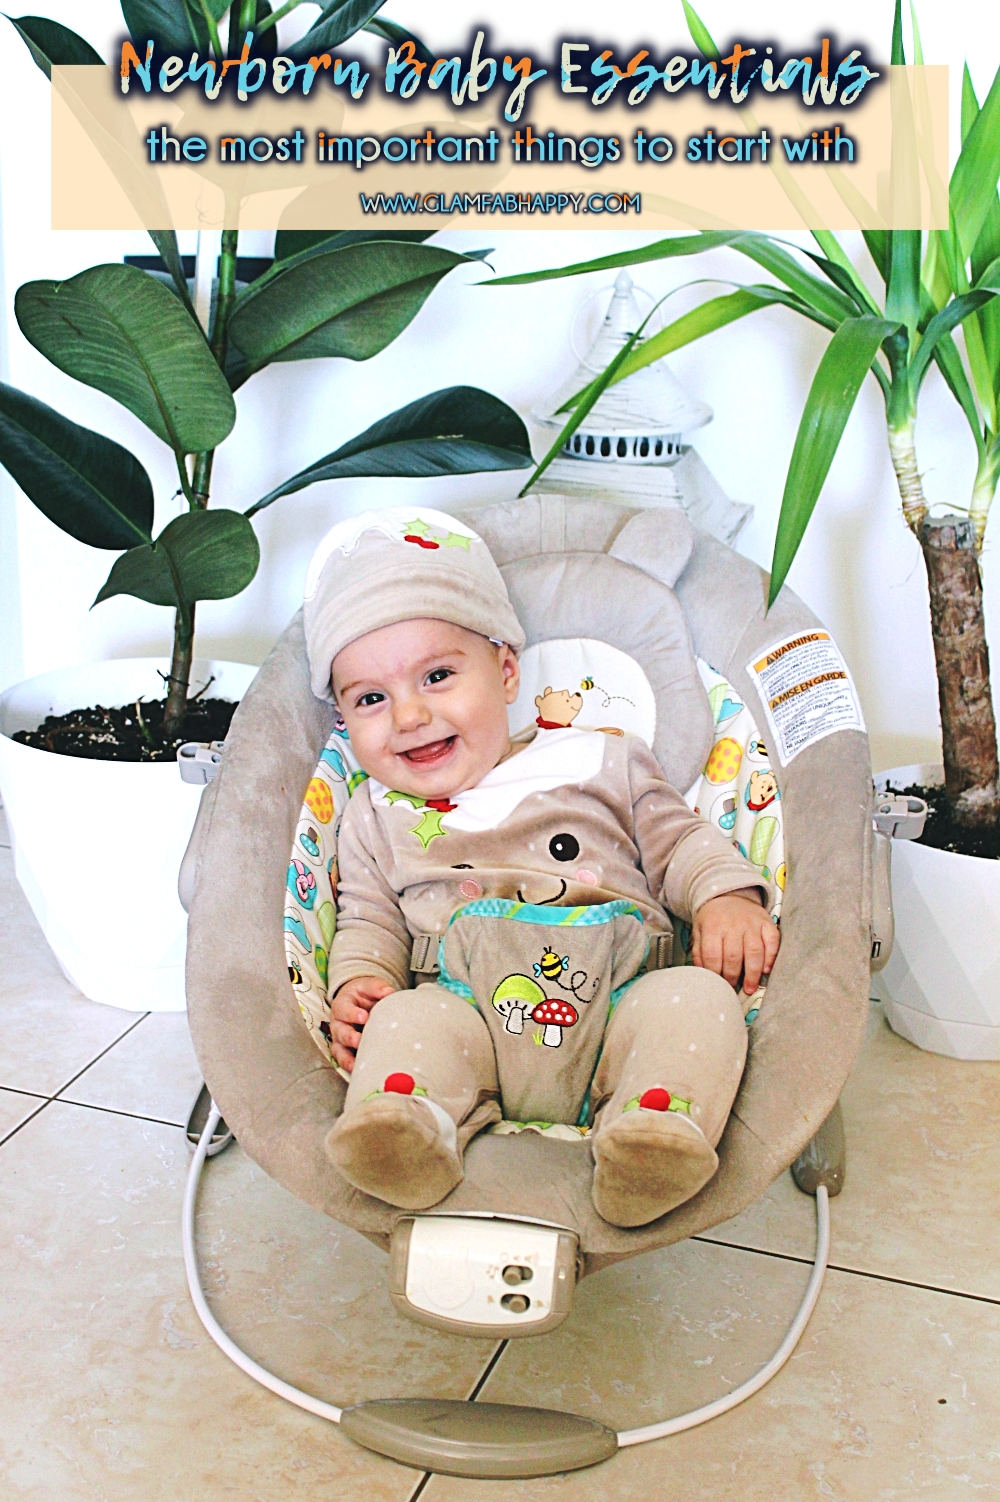 newborn baby essential list for new mother, stvari koje trebaju za novu bebu